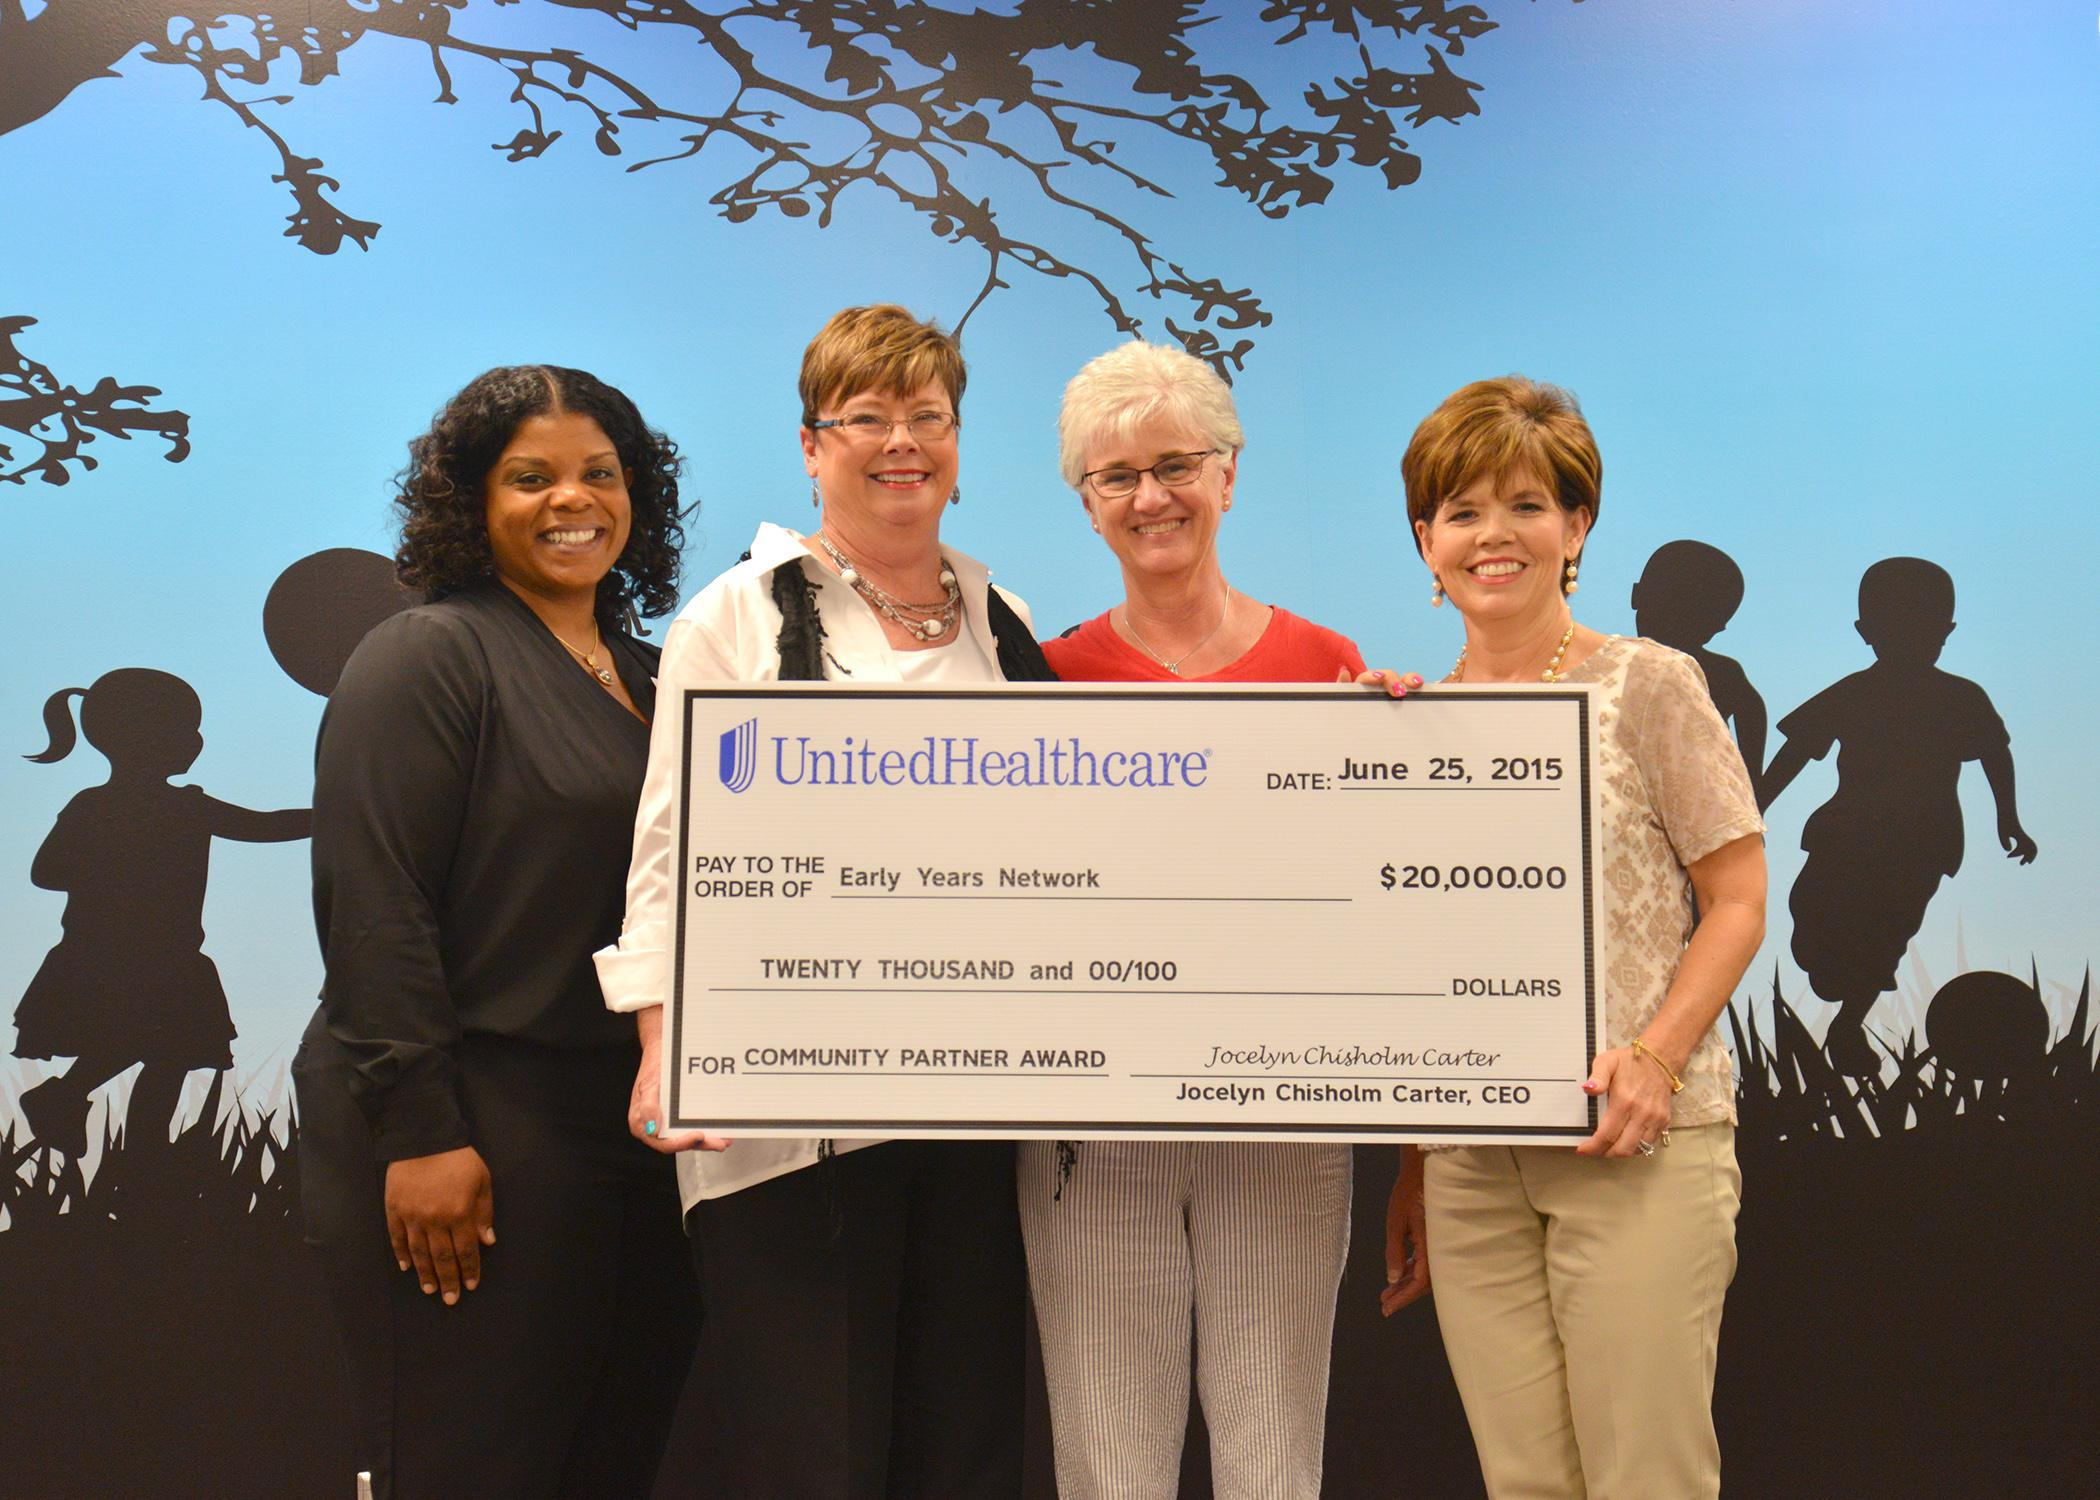 Representatives of the Early Years Network and UnitedHealthcare take part in a check presentation ceremony during the grand opening of the Hinds County Resource and Referral Center at 350 West Woodrow Wilson Avenue in Jackson, Mississippi on June 25, 2015. Celebrating their newly formed partnership are Kenisha Potter, left, pediatric health care coordinator for UnitedHealthcare; Louise E. Davis, professor with the Mississippi State University Extension Service and director of the Early Years Network; Connie